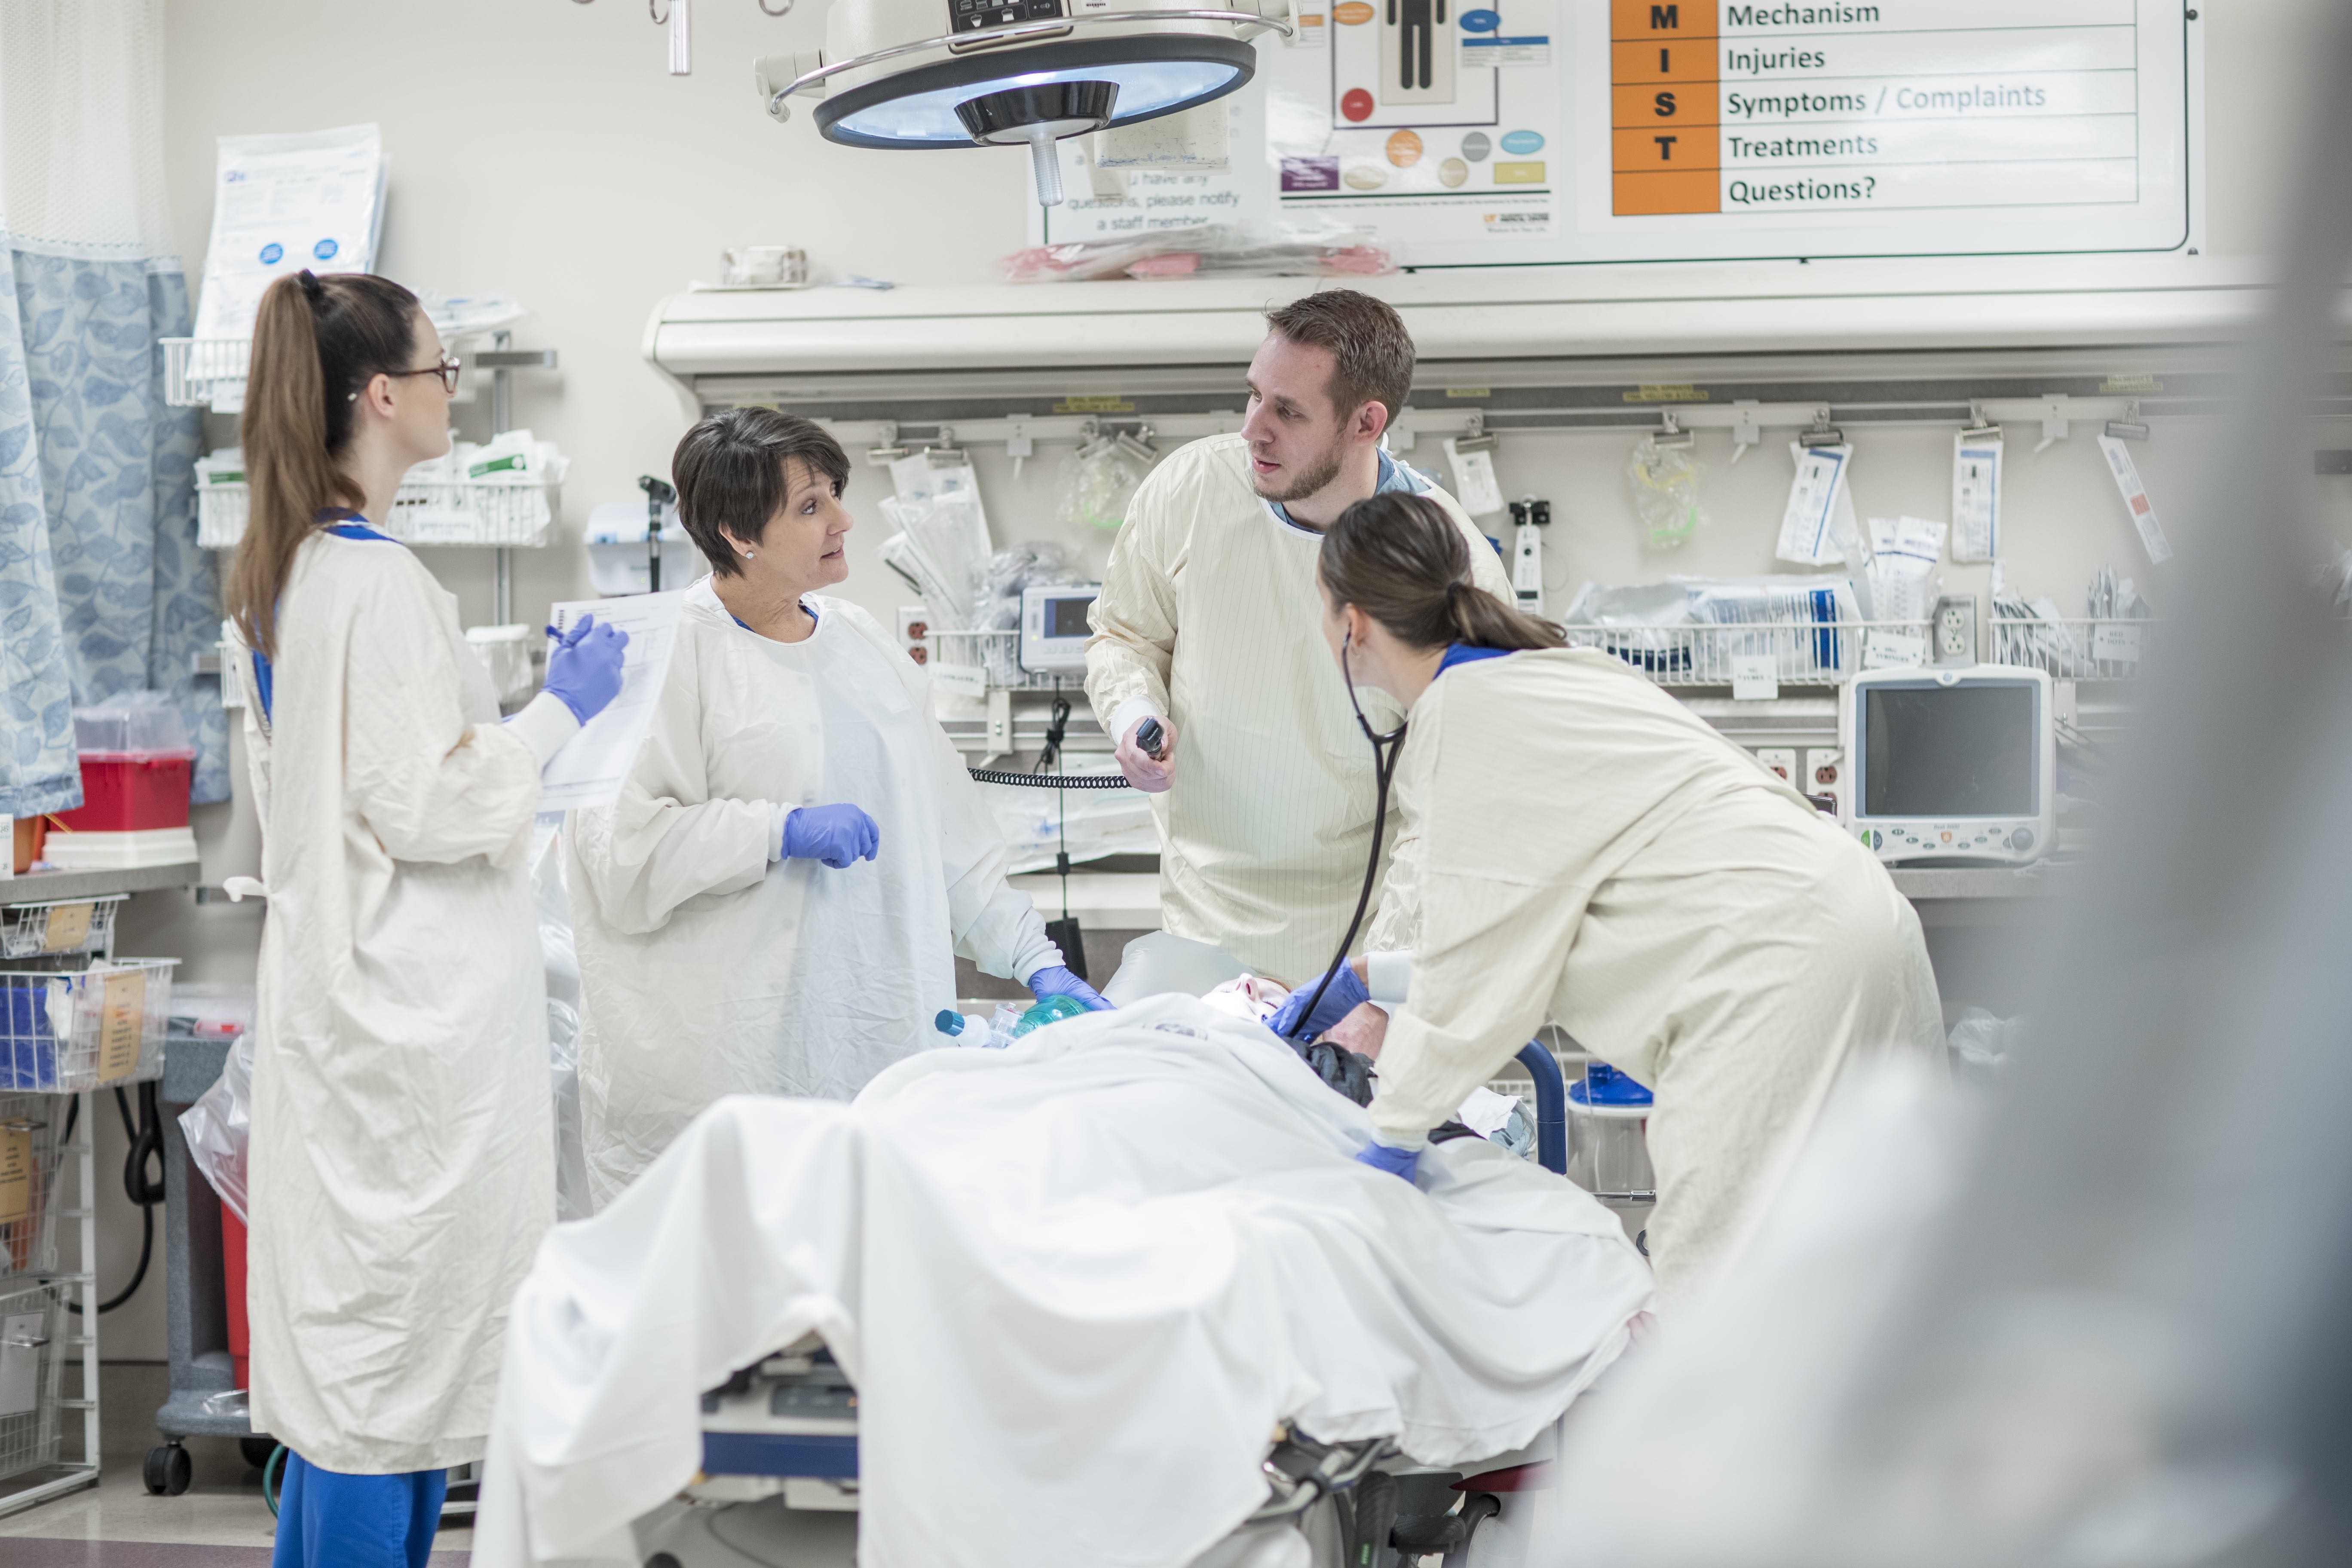 Emergency department physicians and providers work on a patient in an emergency room